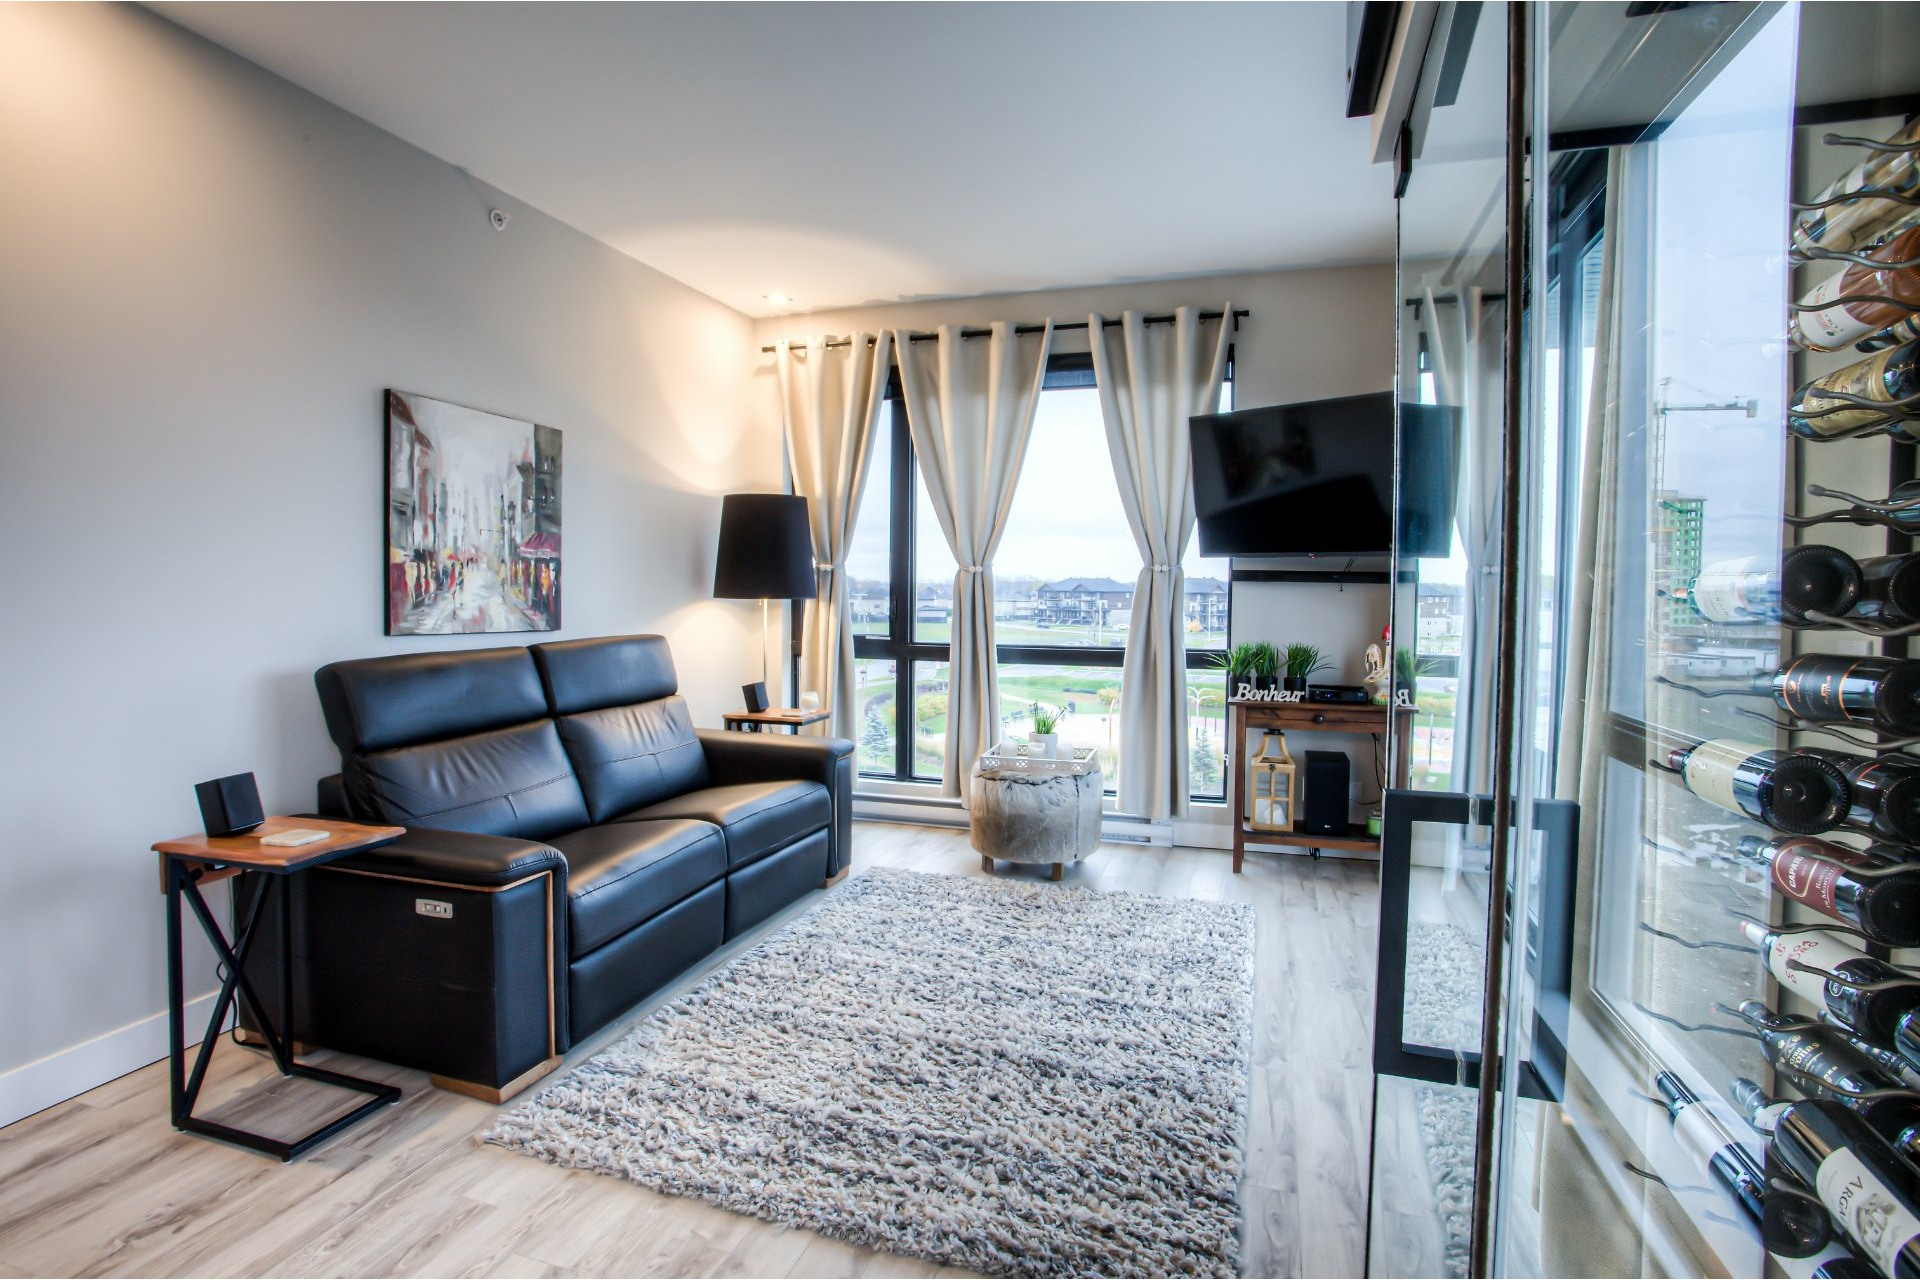 image 2 - Apartment For sale Vaudreuil-Dorion - 7 rooms